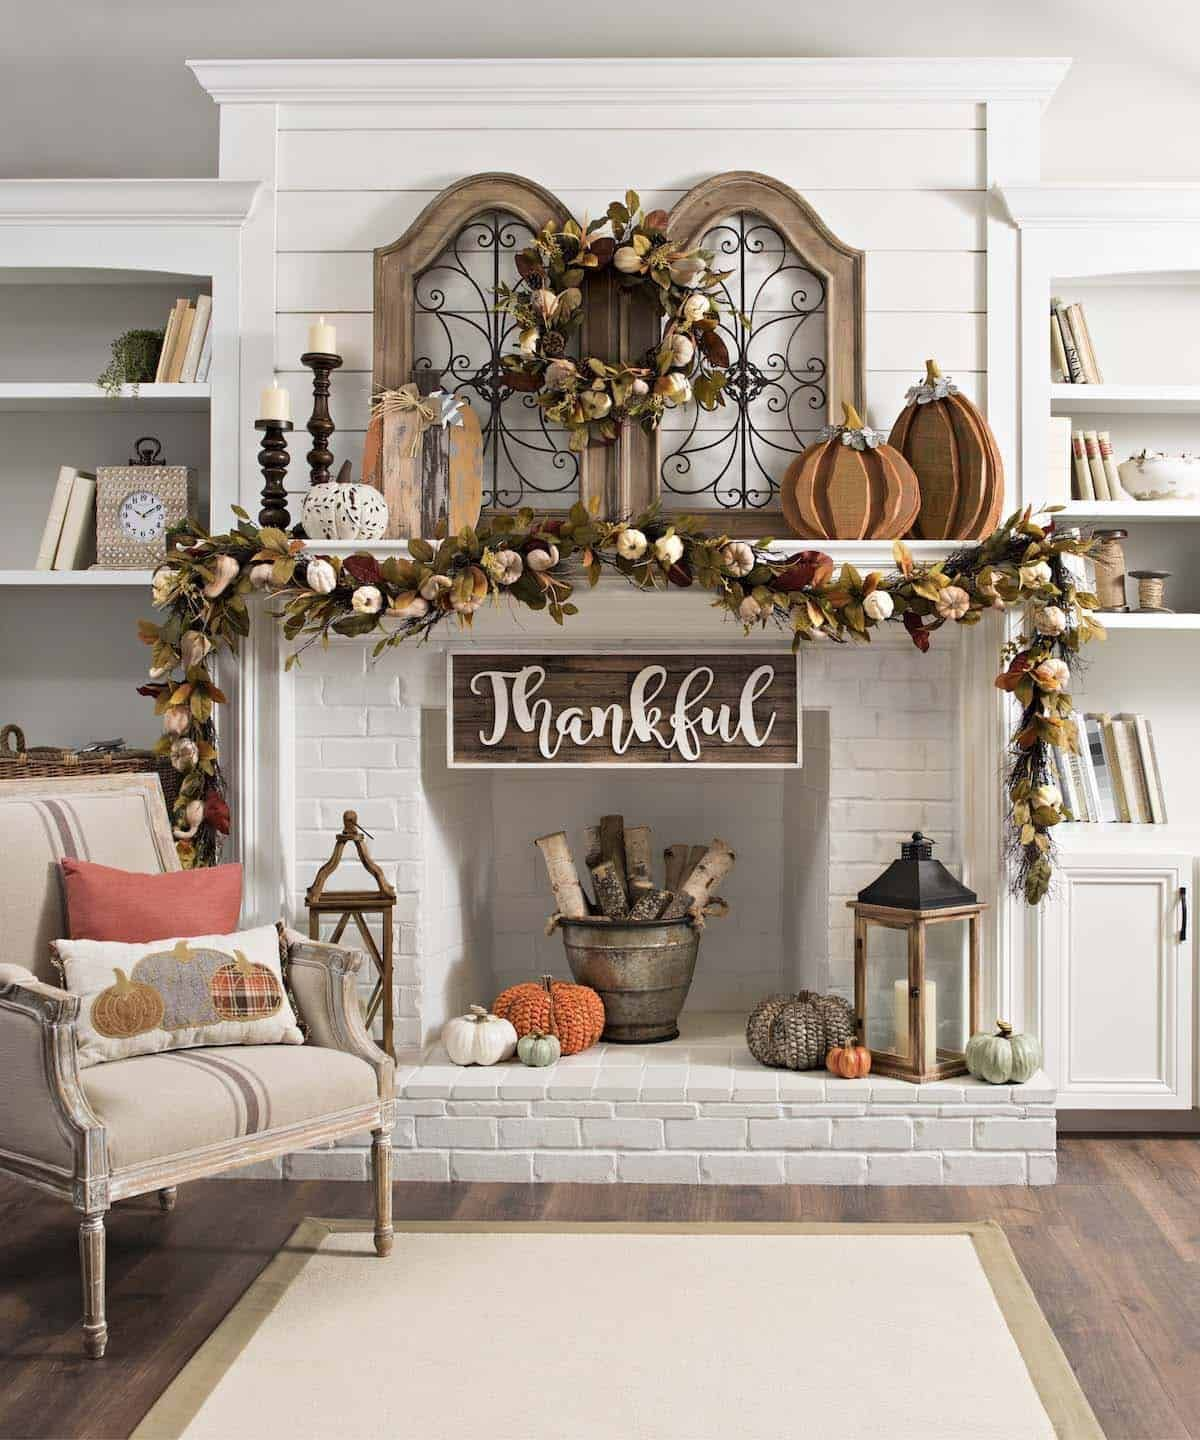 12+ Fireplace mantel fall decorating ideas ideas in 2021